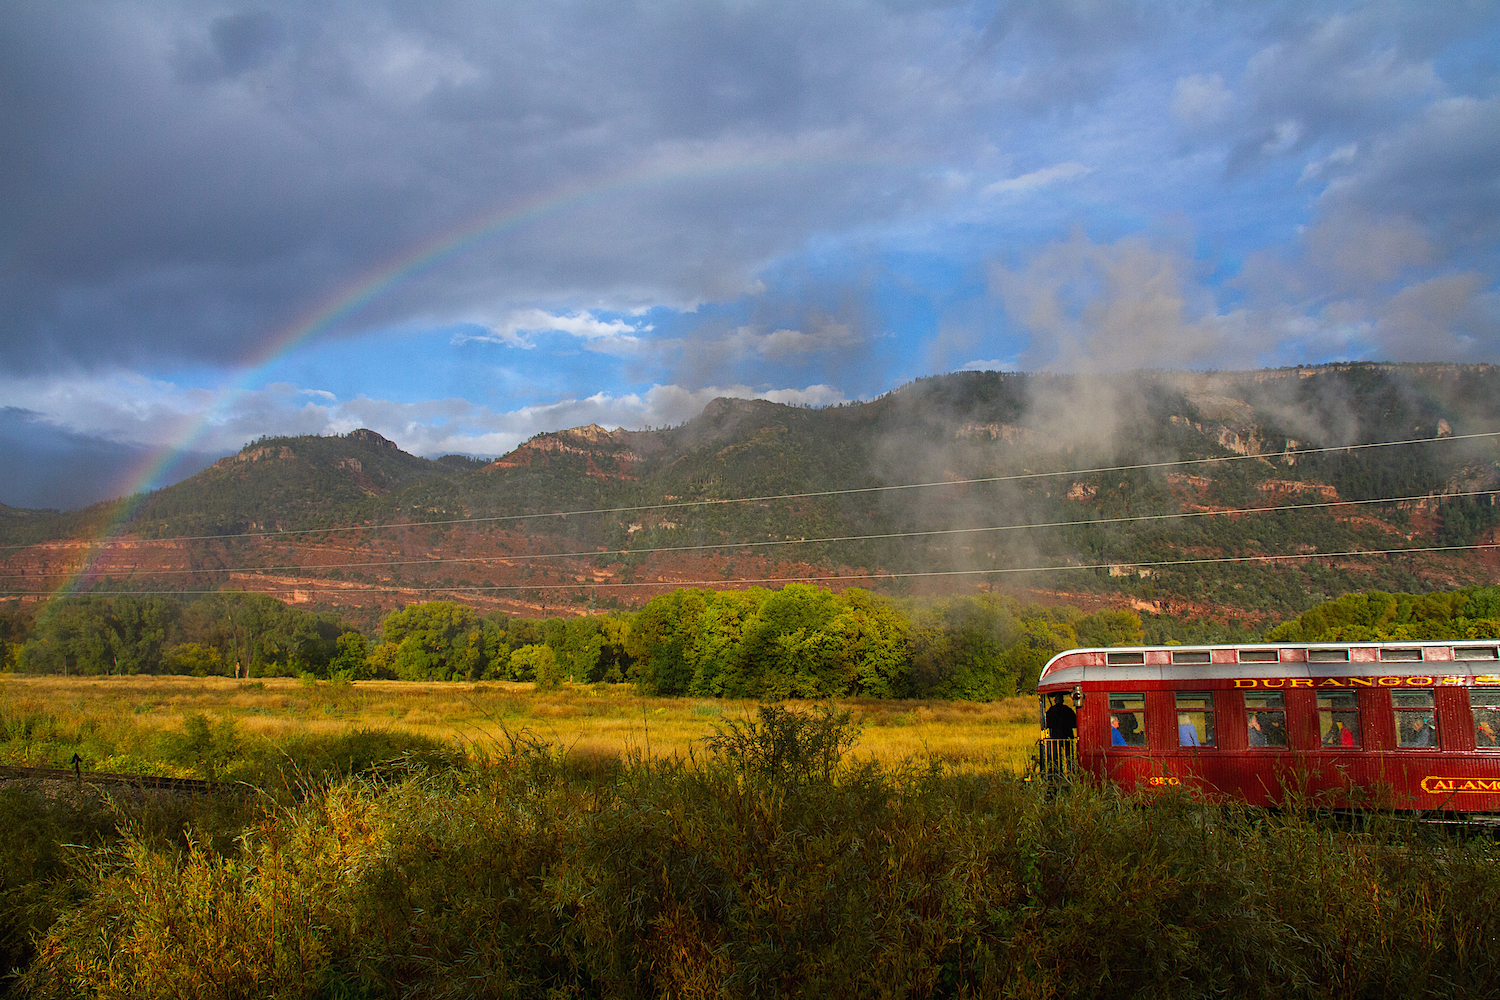 Durango Caboose with Rainbow, Image #6099